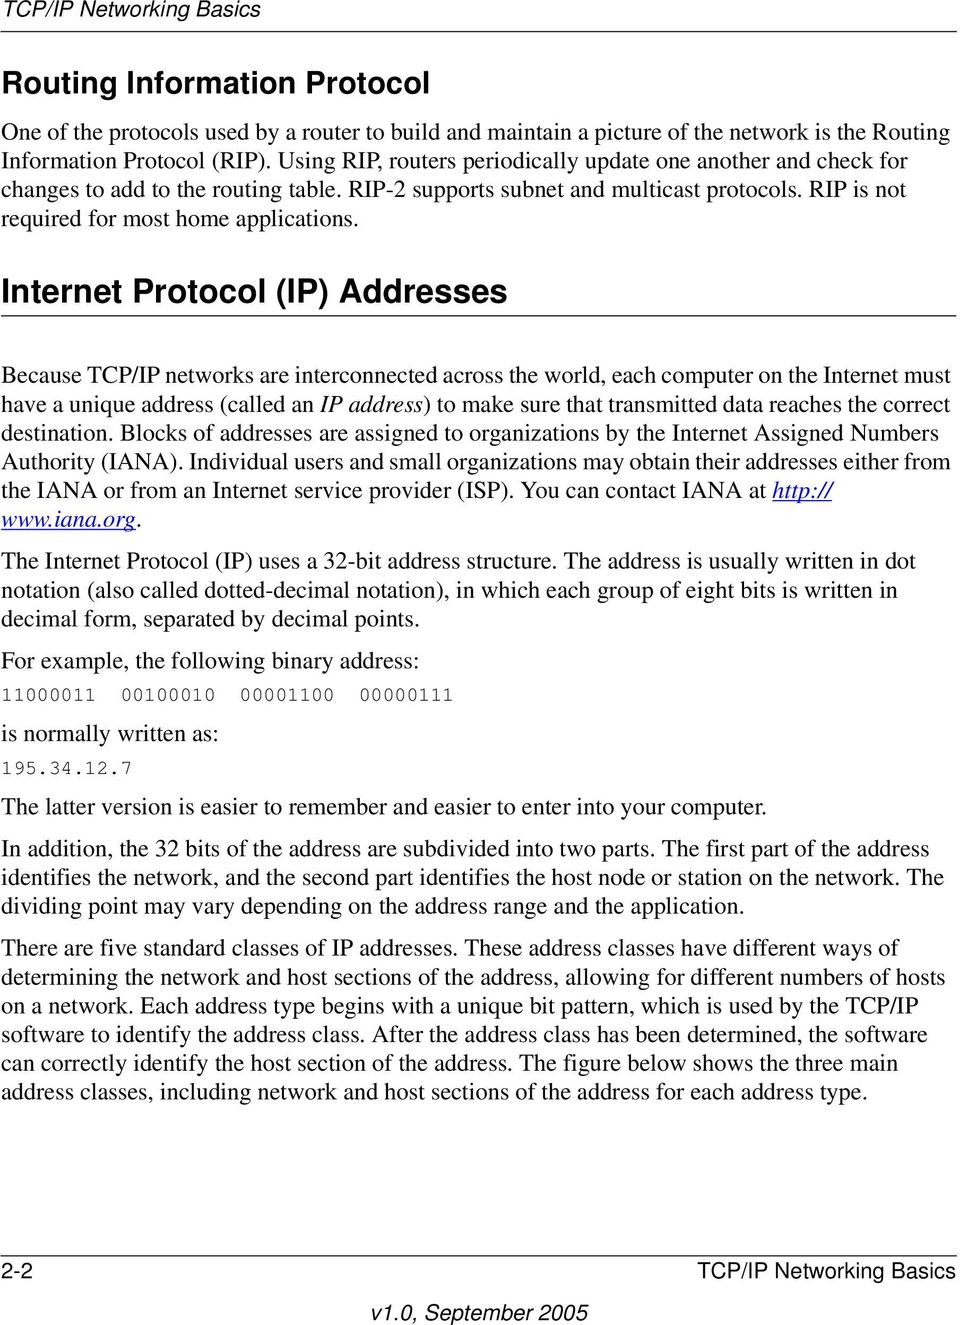 Internet Protocol (IP) Addresses Because TCP/IP networks are interconnected across the world, each computer on the Internet must have a unique address (called an IP address) to make sure that